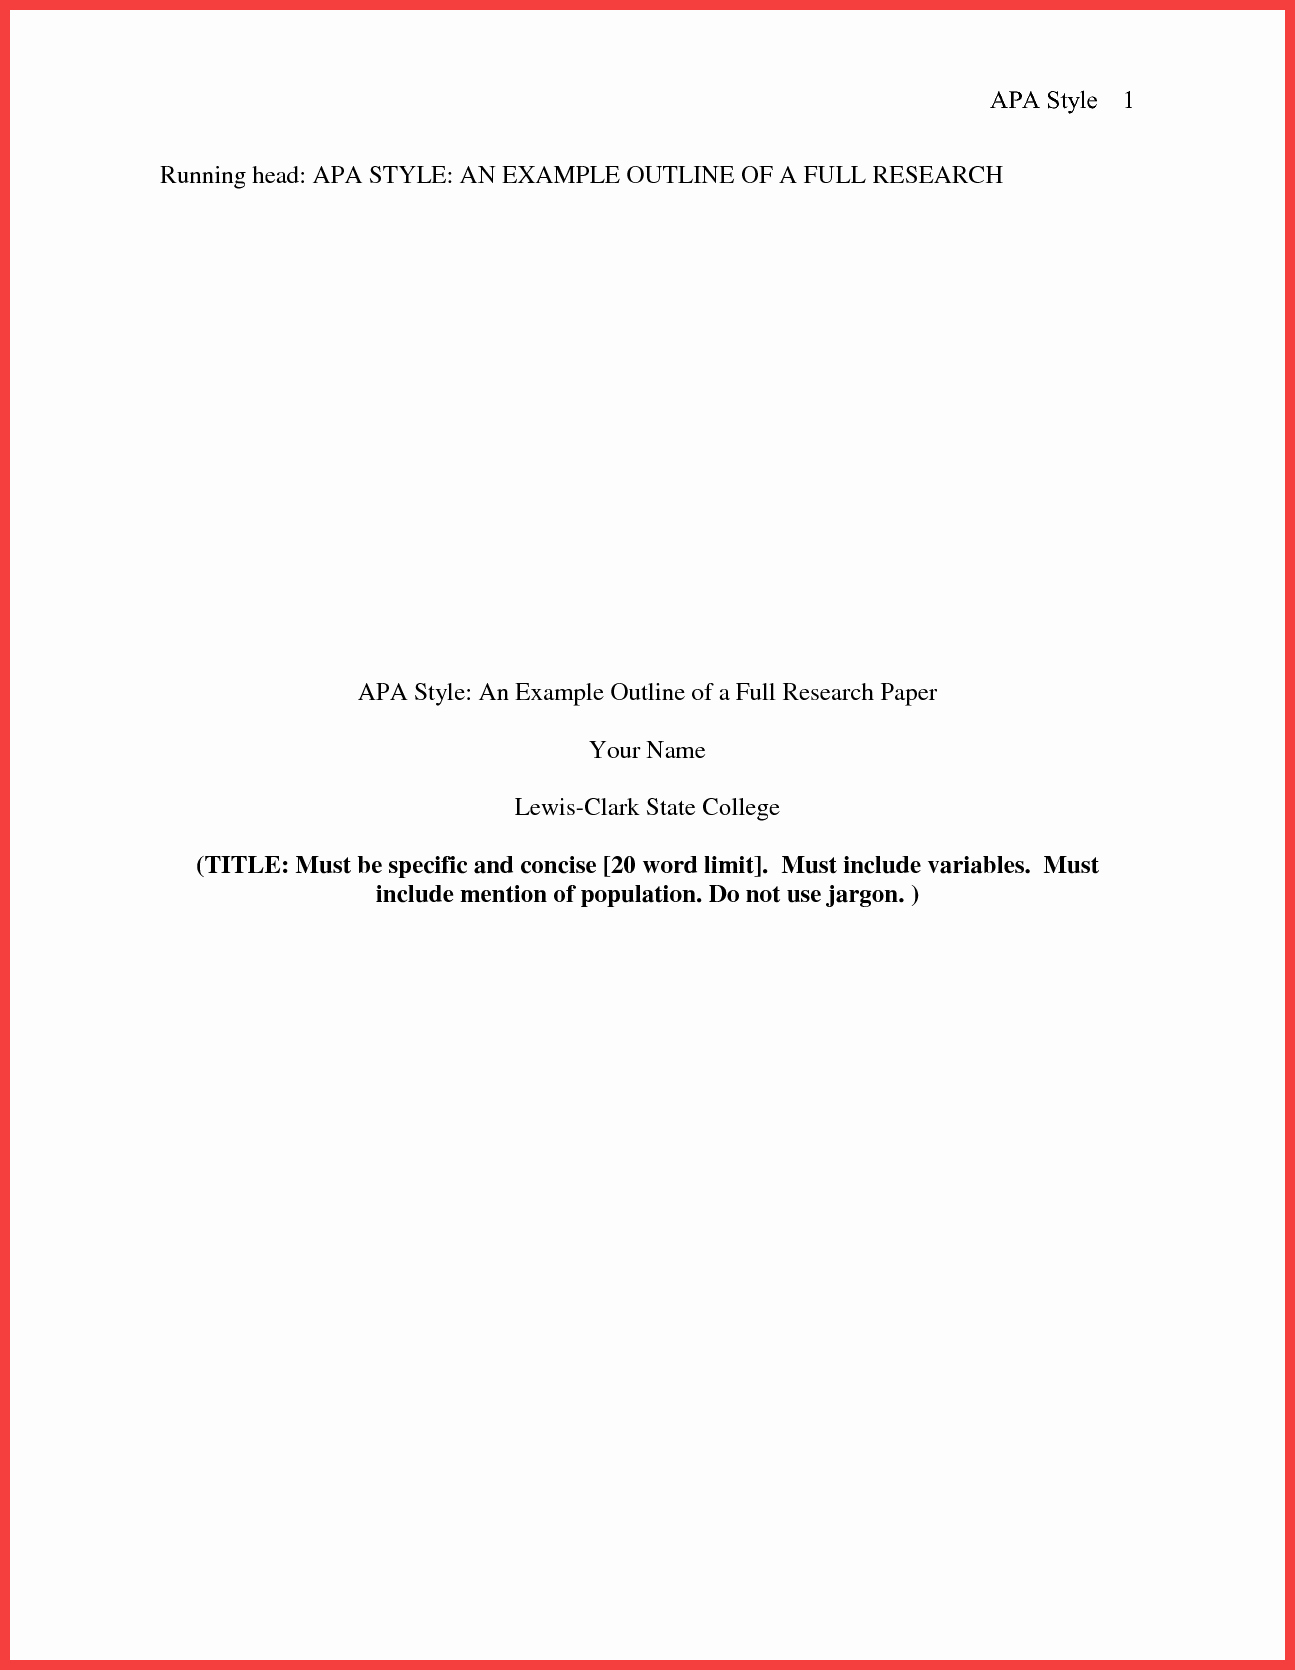 Apa format Cover Page 2016 Lovely Apa format Title Page 2016